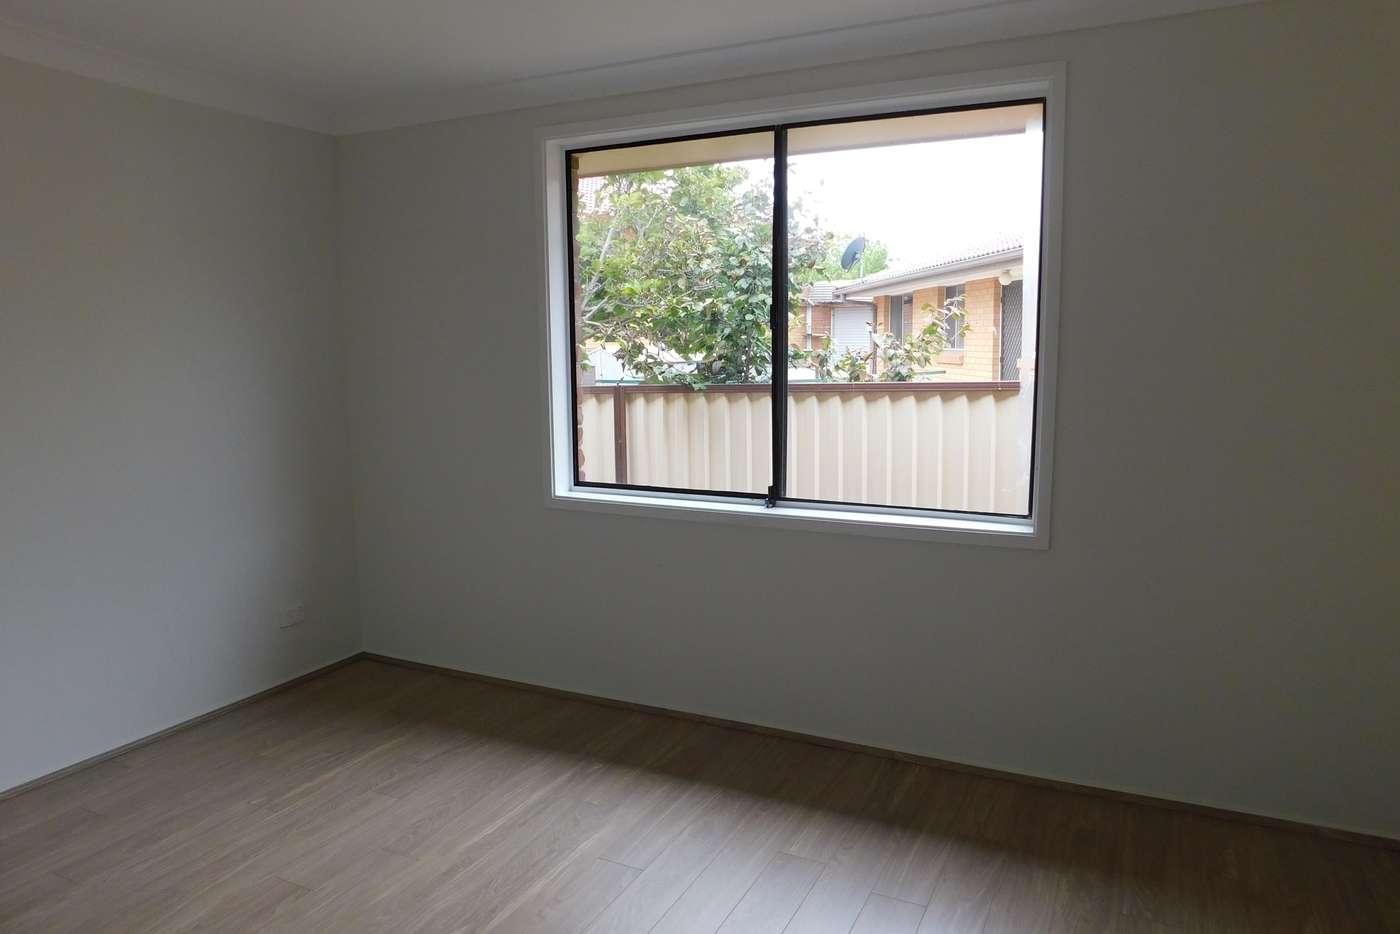 Seventh view of Homely house listing, 17 Longfellow Street, Wetherill Park NSW 2164